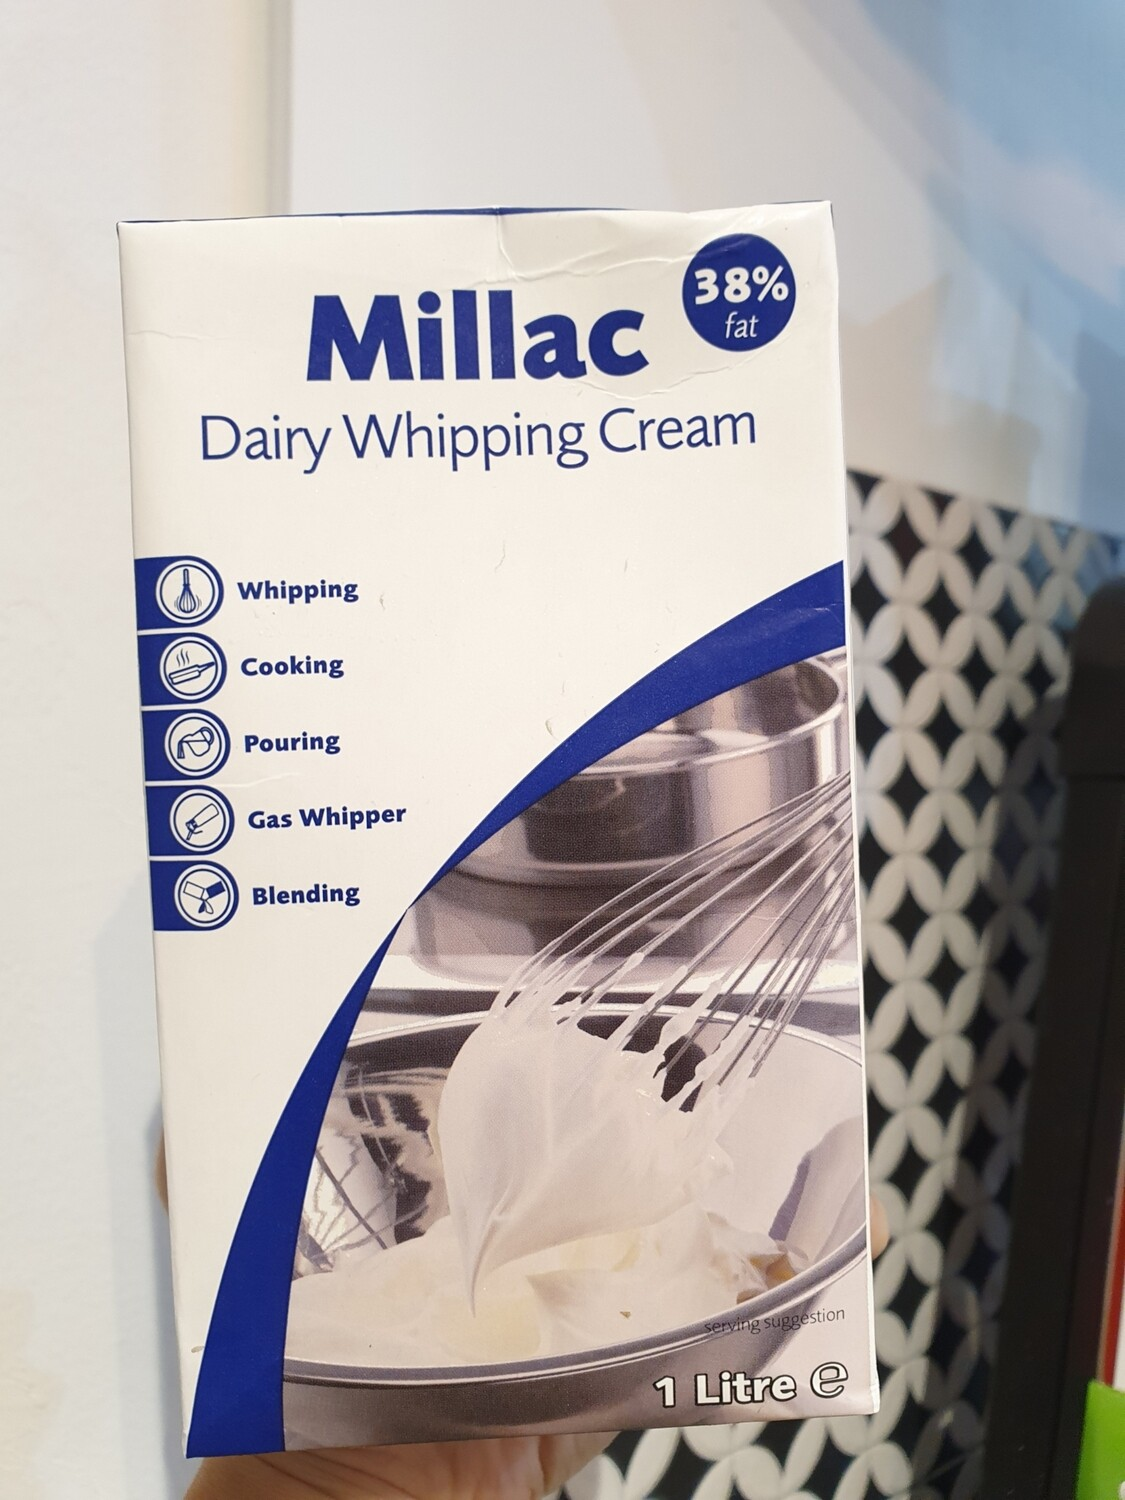 Millac, UHT Dairy Whipping Cream 38%, 1L